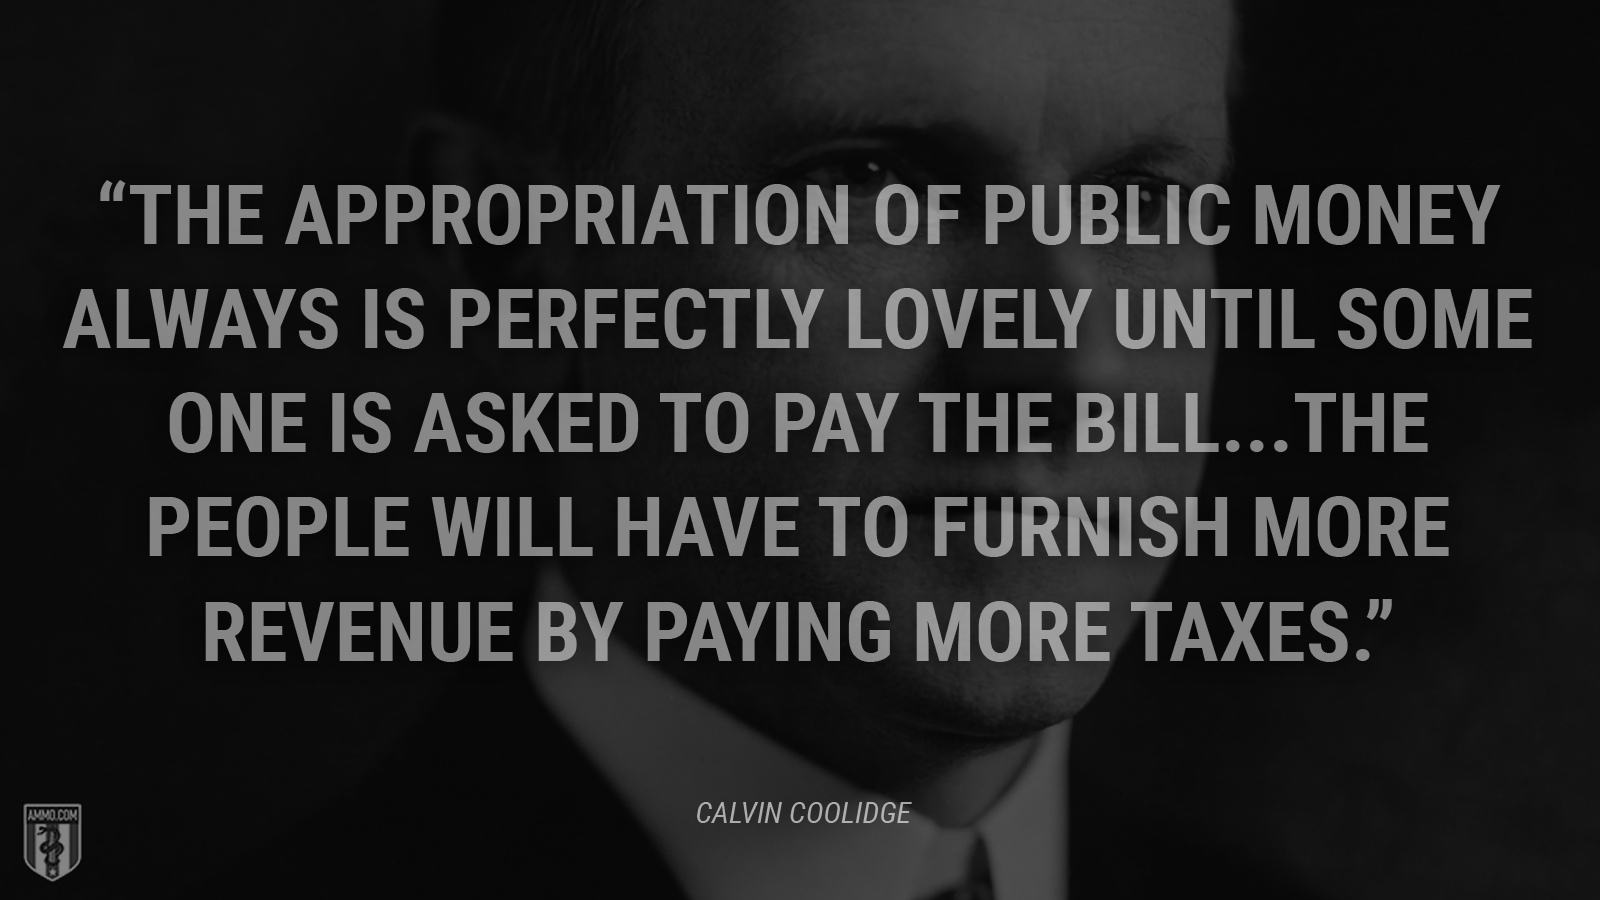 """The appropriation of public money always is perfectly lovely until some one is asked to pay the bill...the people will have to furnish more revenue by paying more taxes."" - Calvin Coolidge"